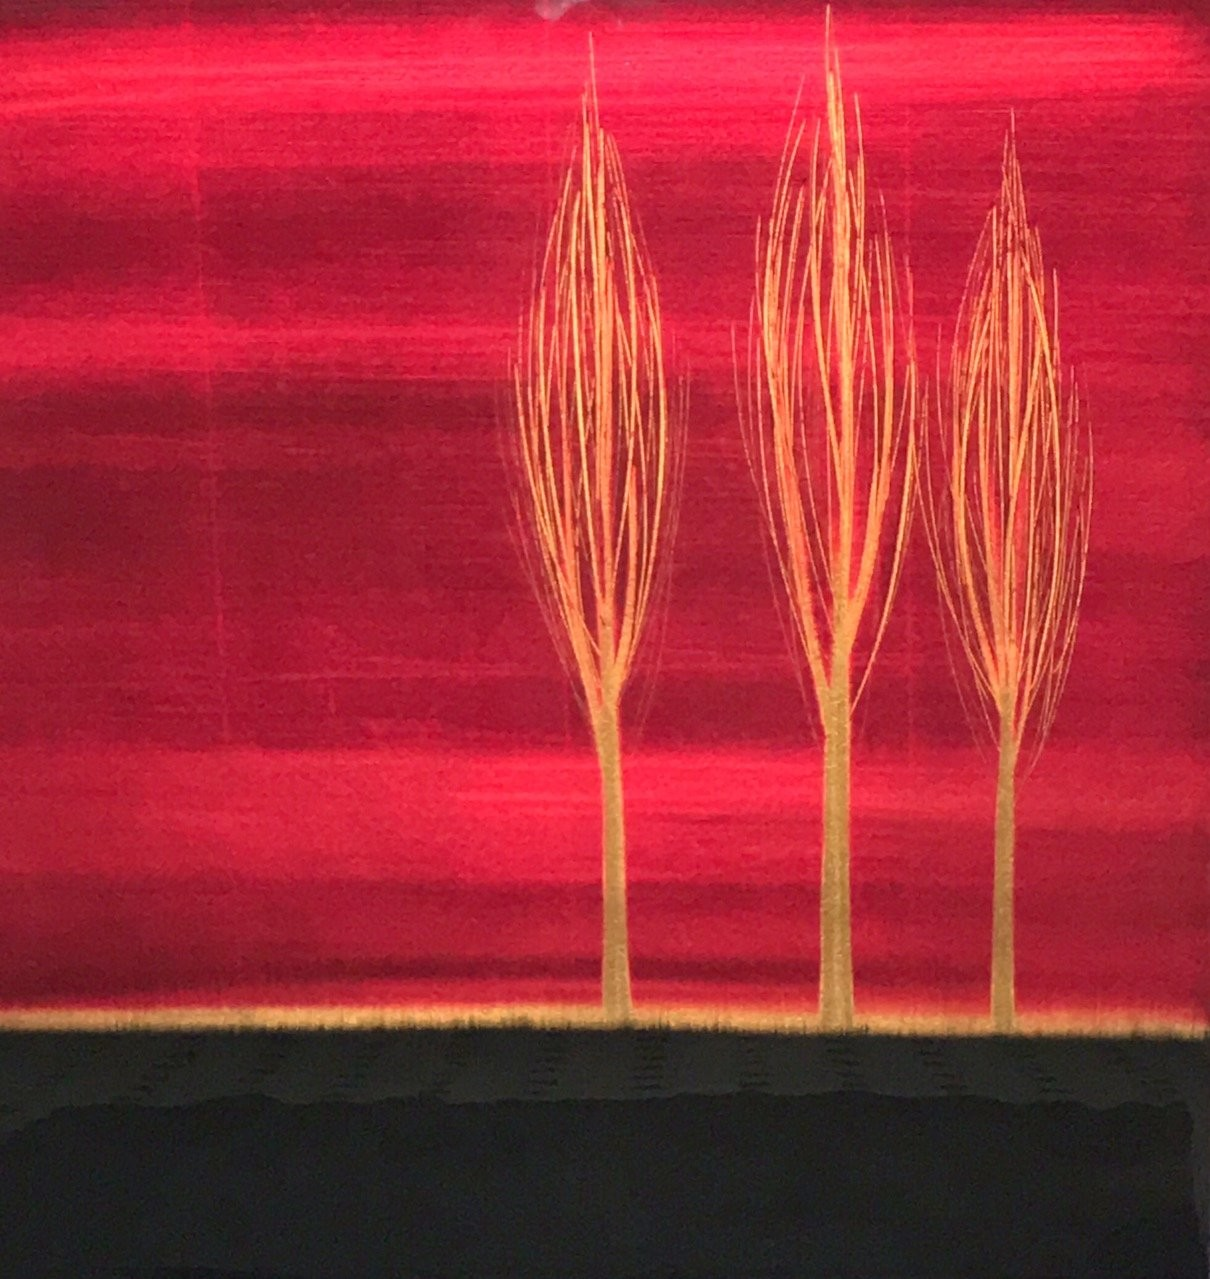 Trio, Red,oil, copper leaf, contemporary painting, original, Brazilian artist Hamilton Aguiar, resin painting, illuminating